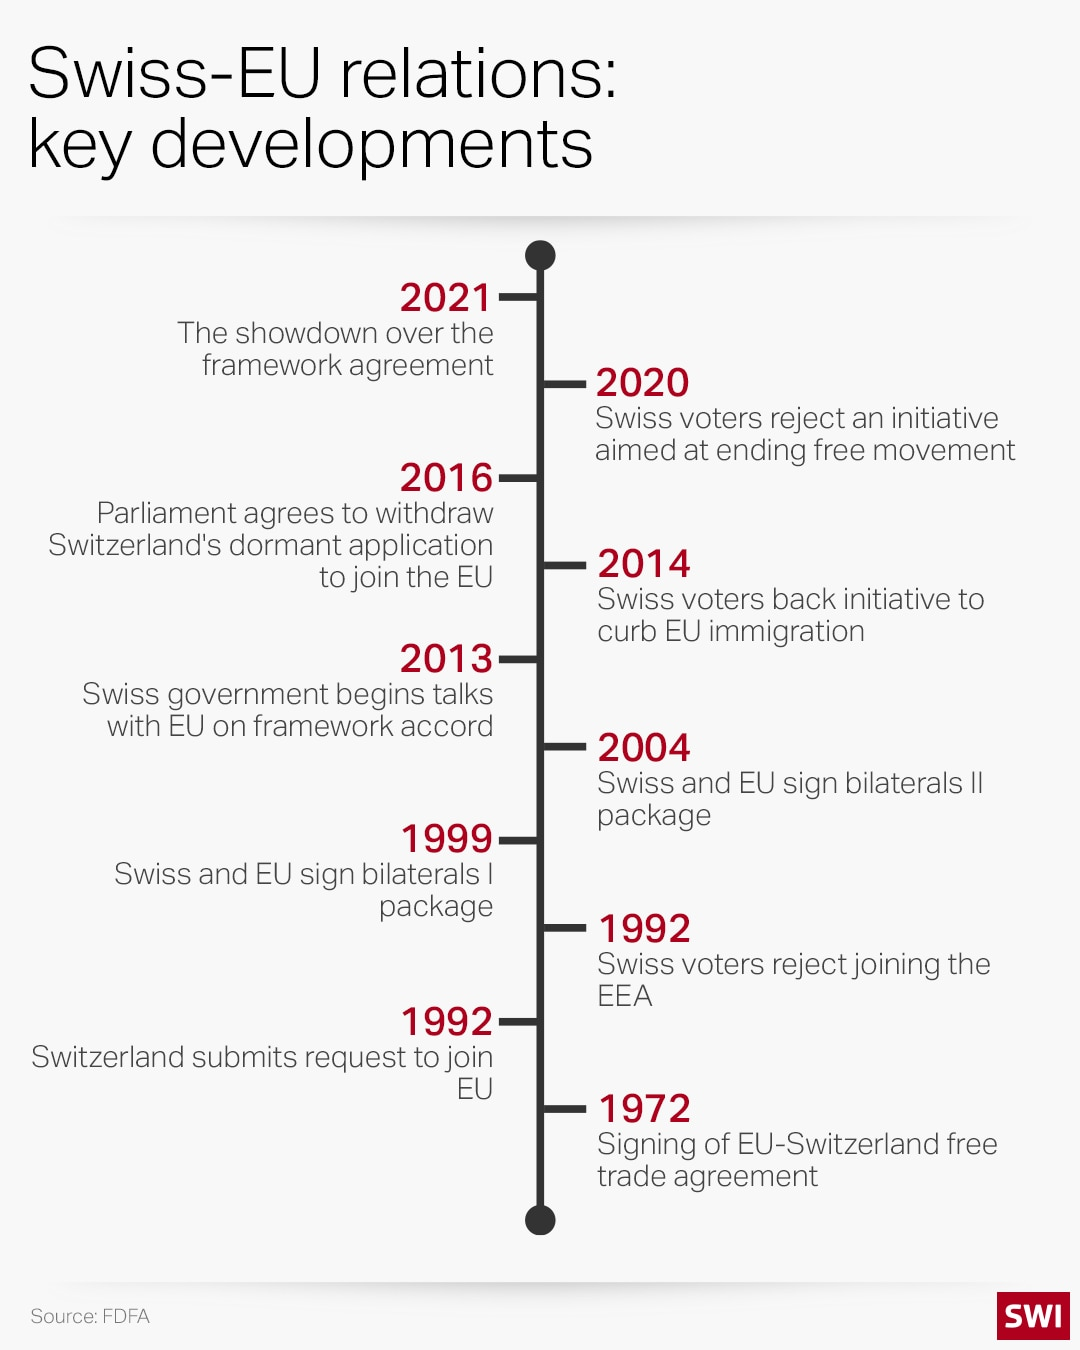 chart of key developments